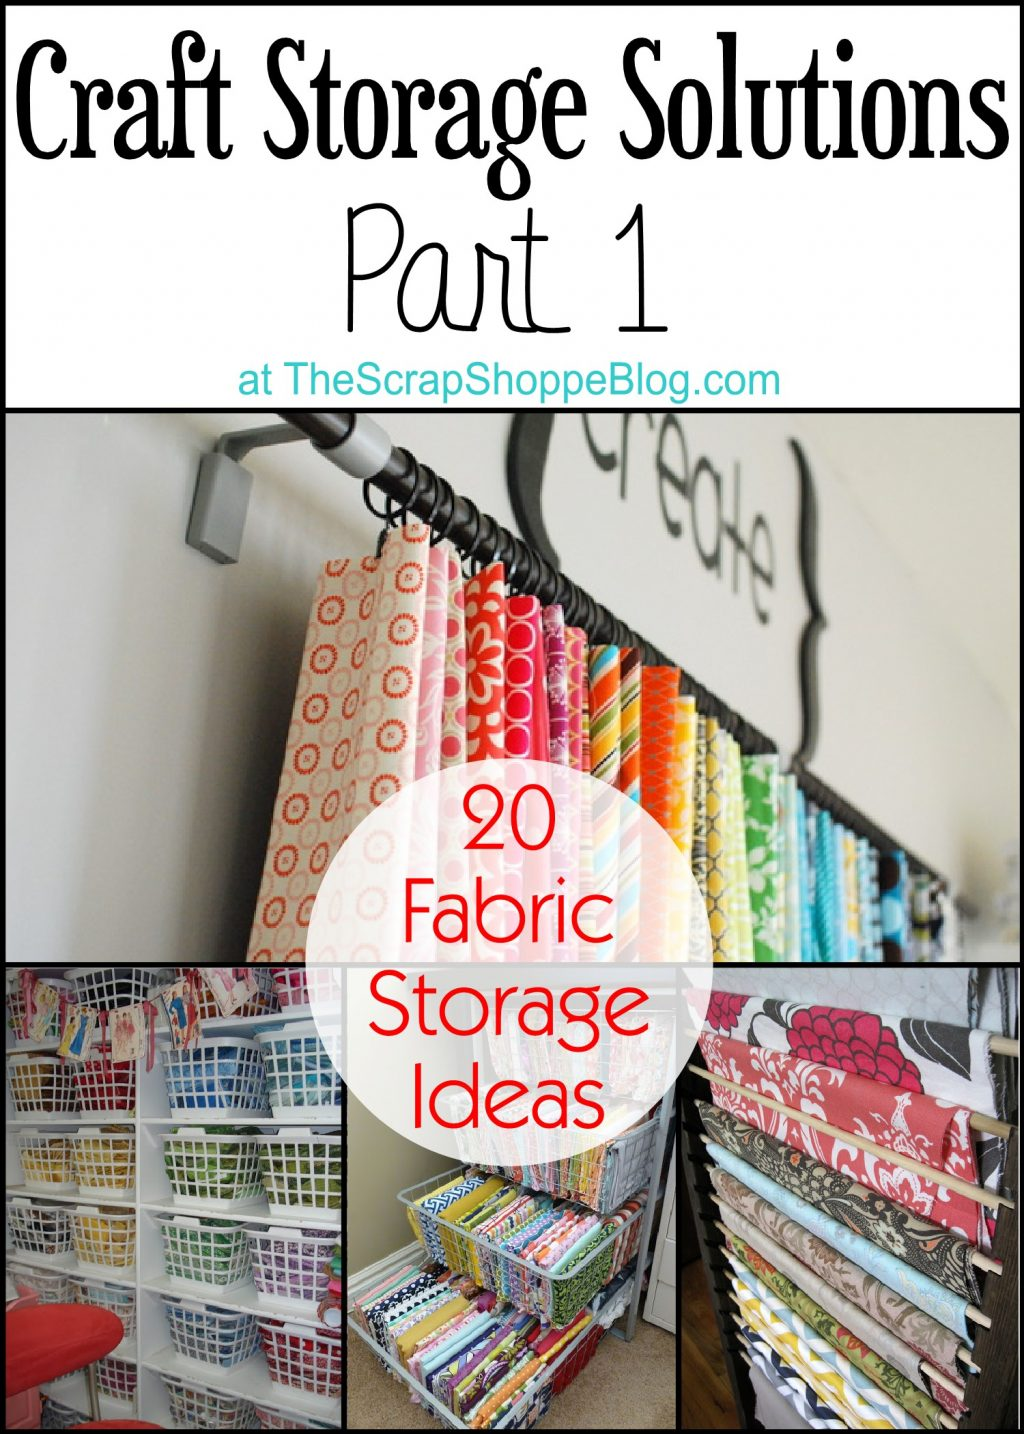 Merveilleux 20 Fabric Storage Solutions